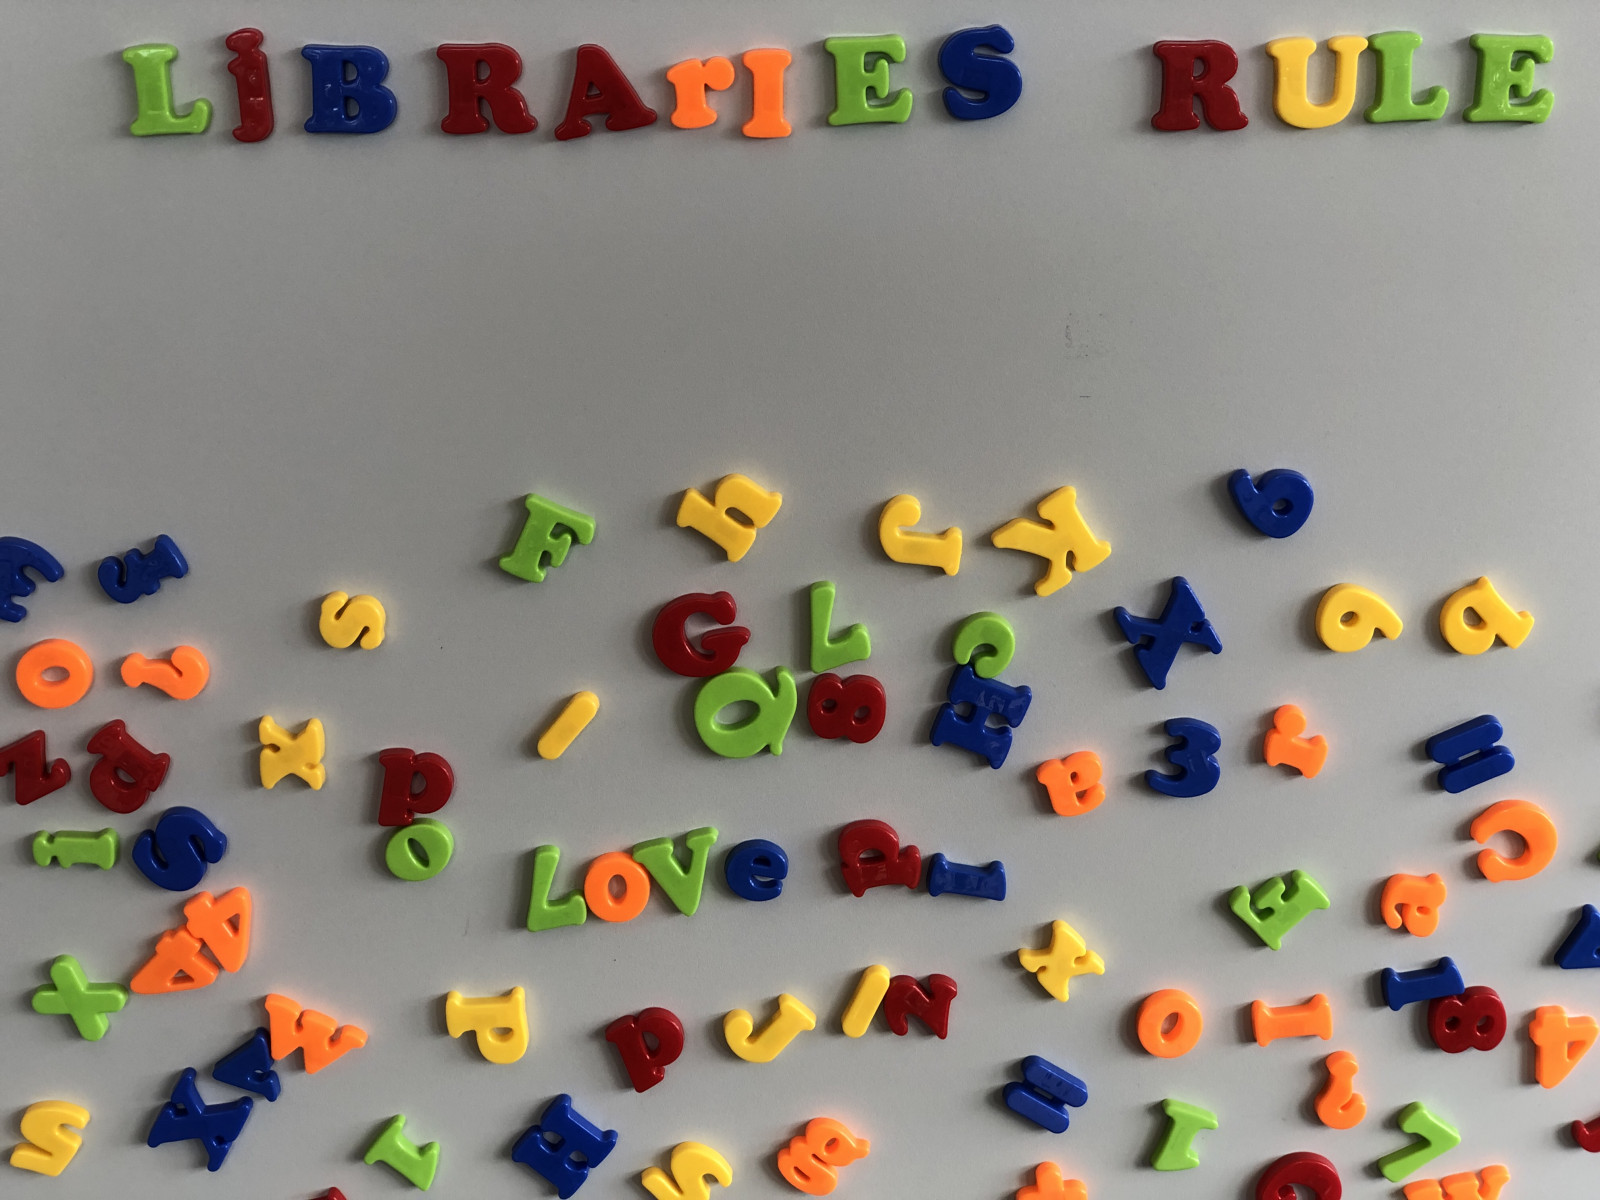 Letters spelling out Libraries Rule